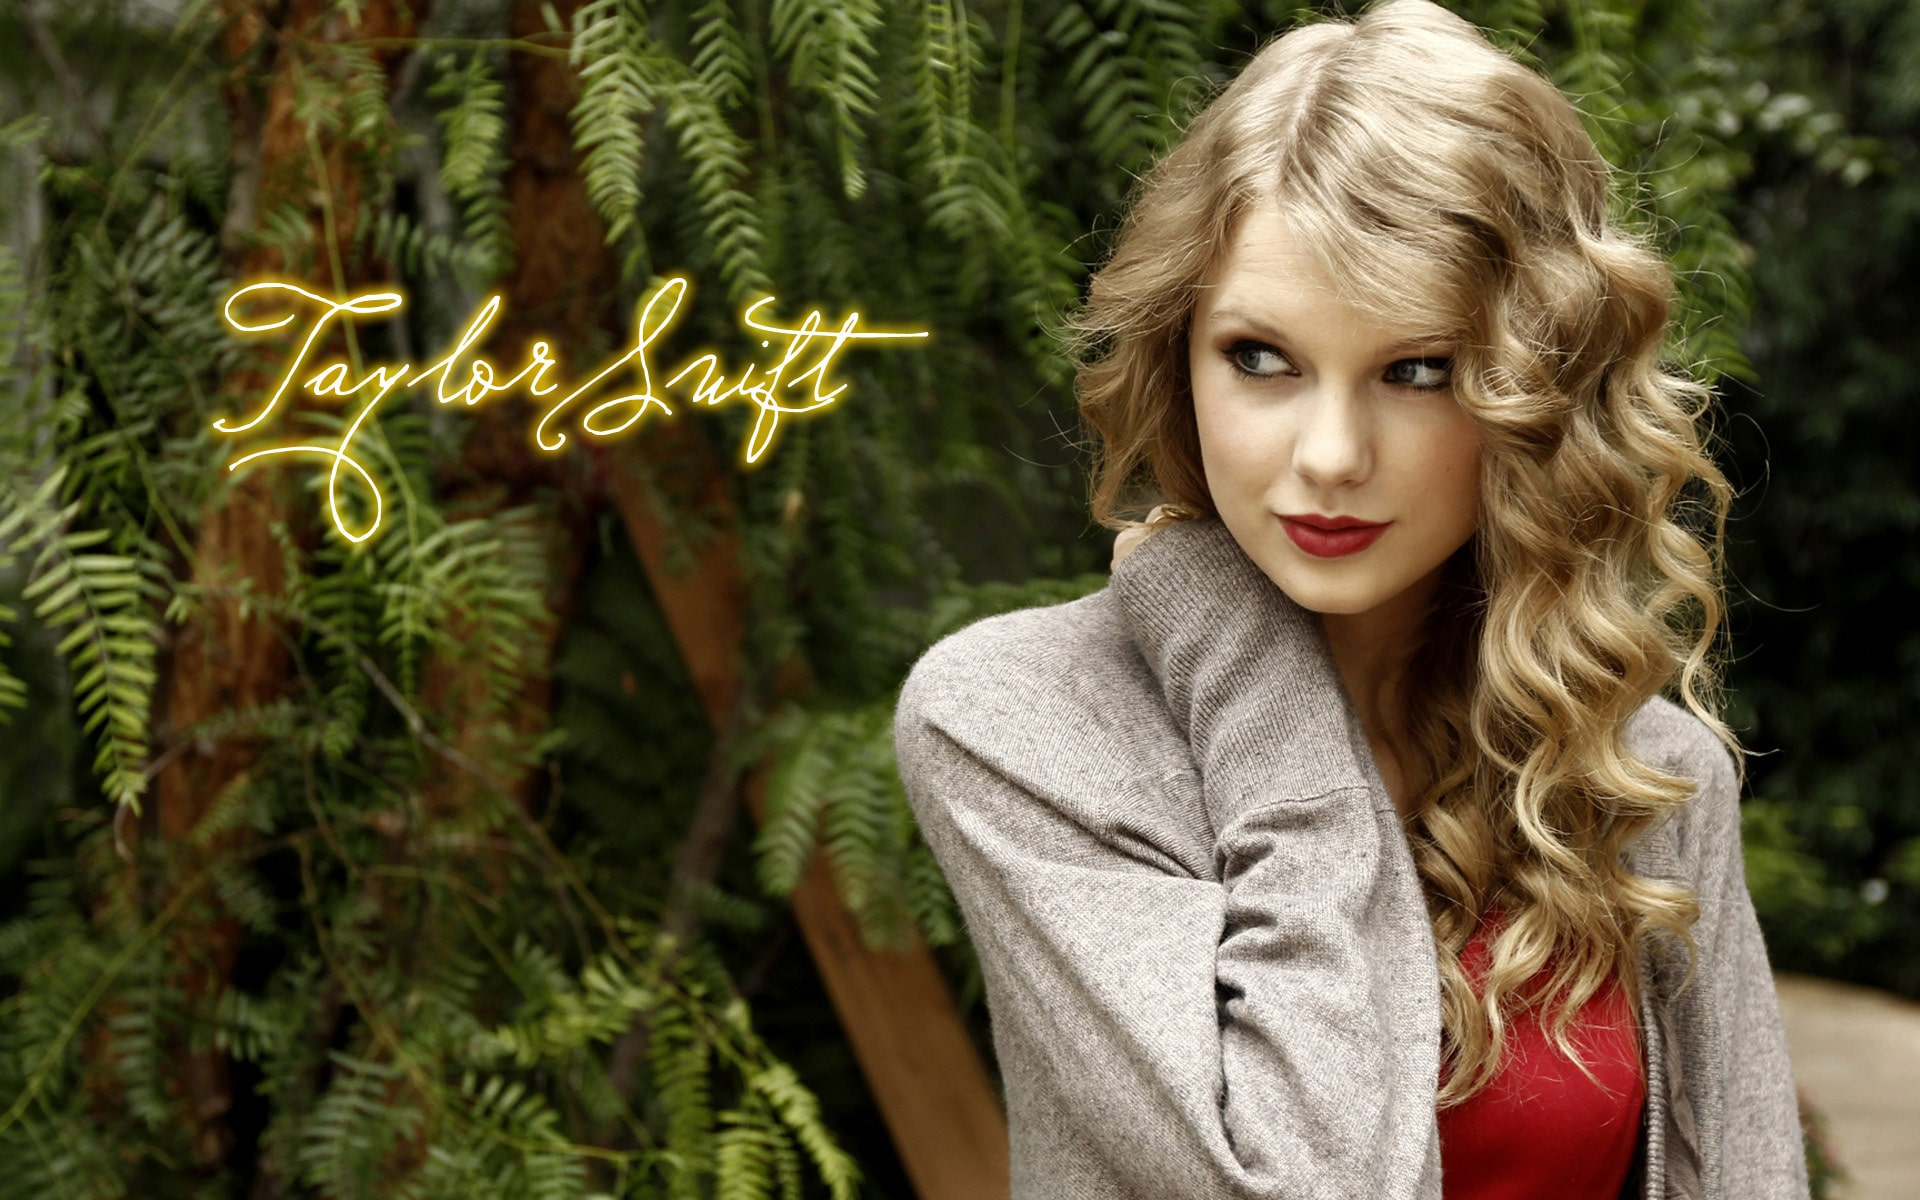 Taylor Swift widescreen wallpapers